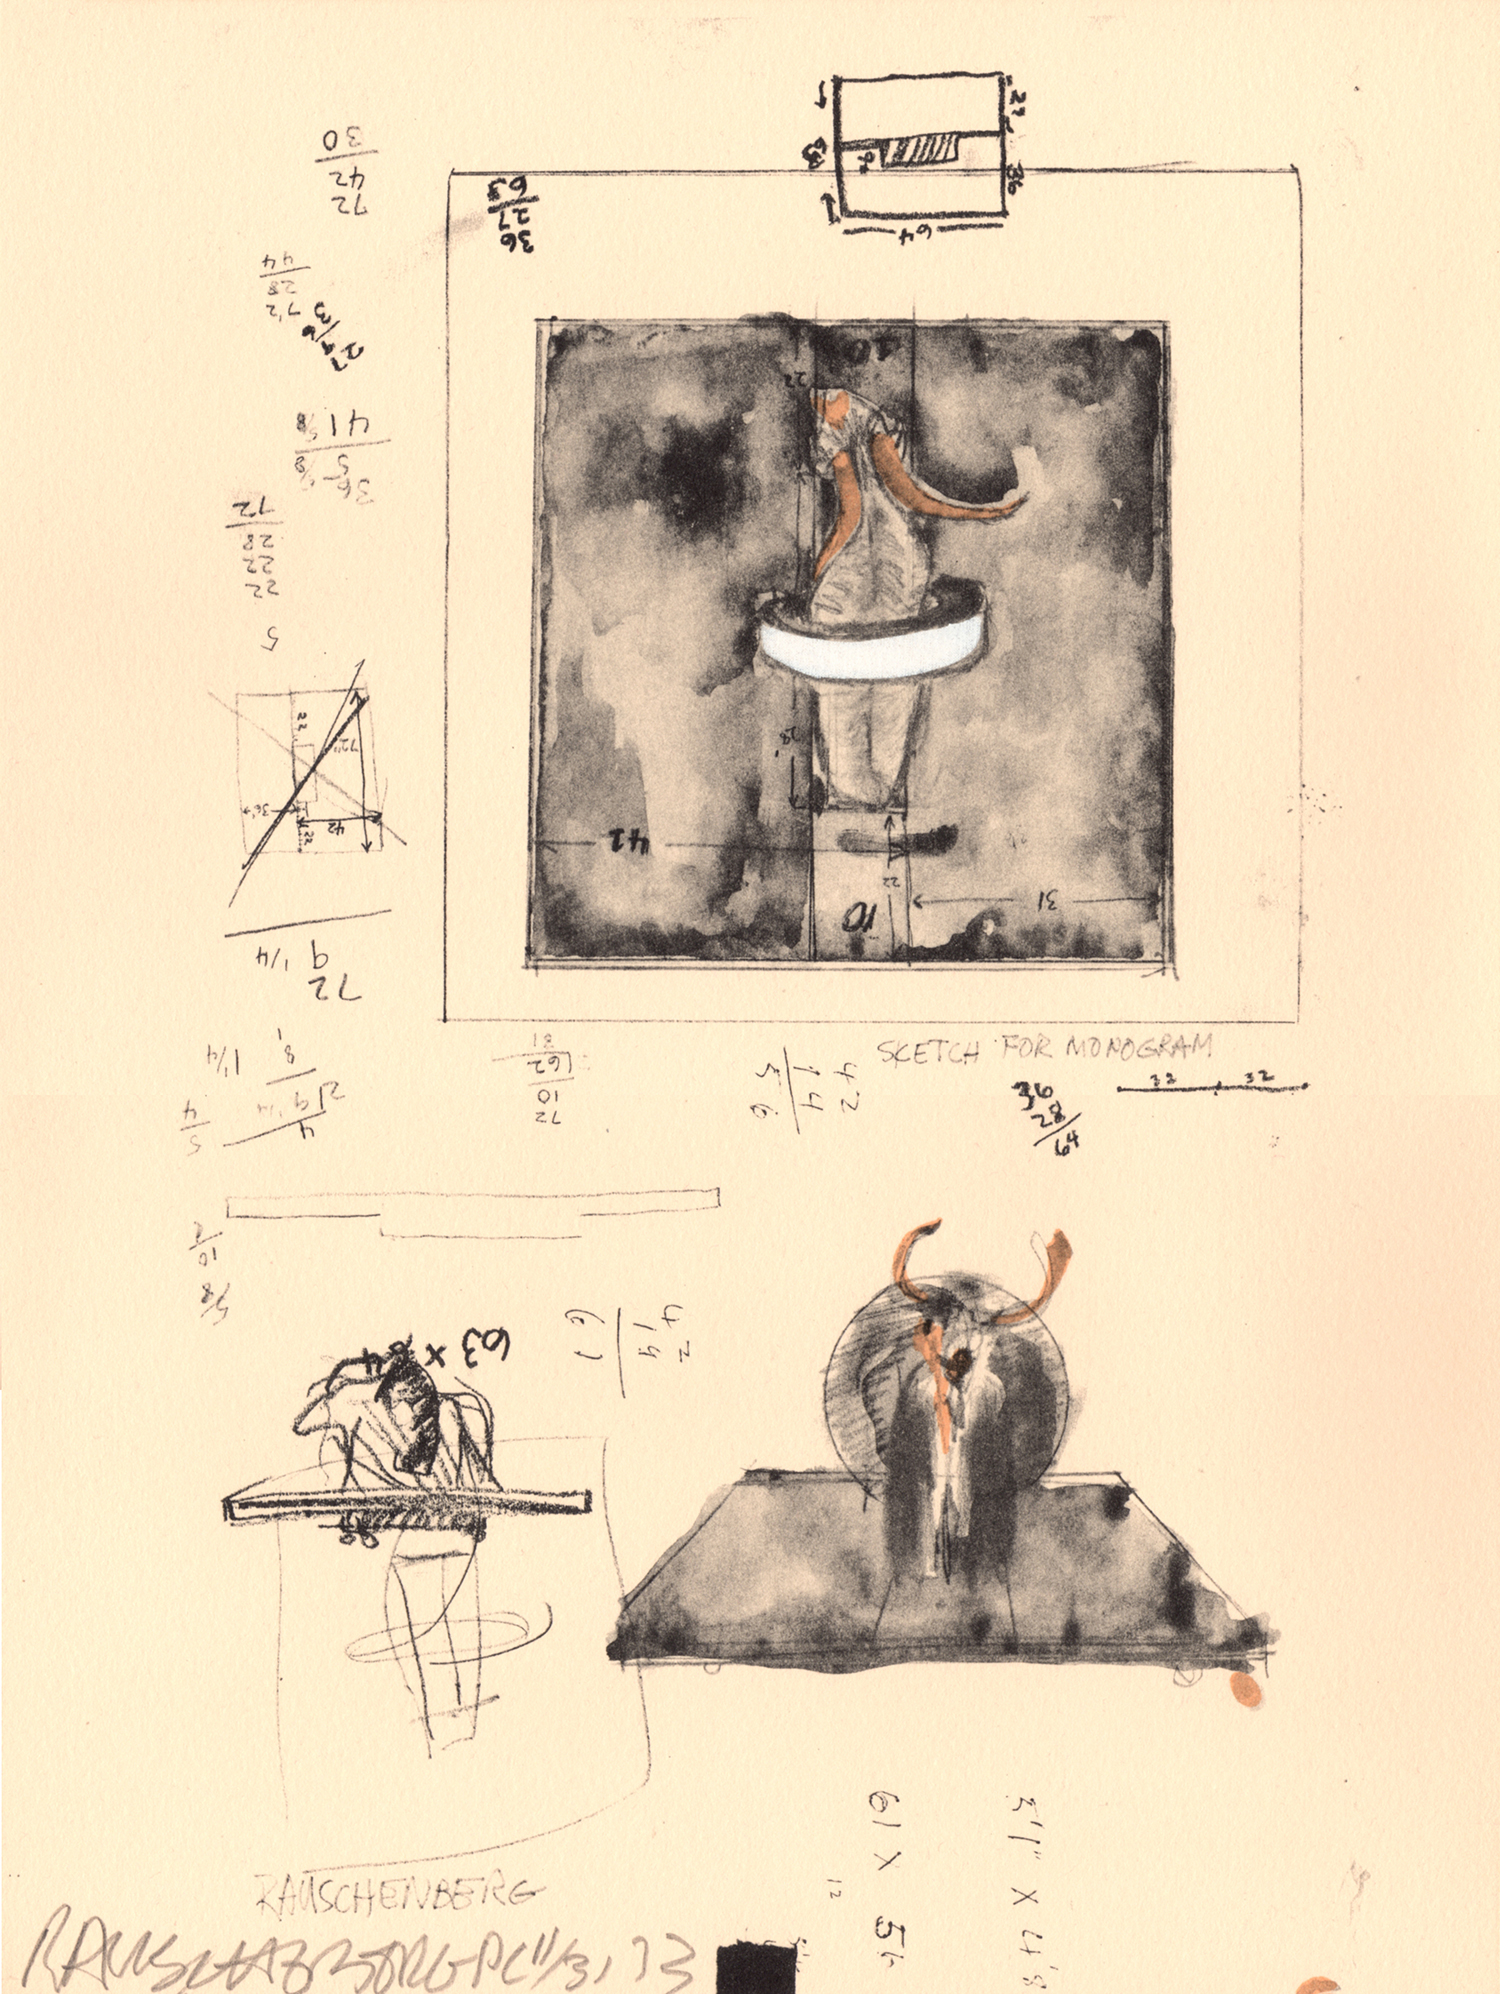 Sketch for 'Monogram' by Robert Rauschenberg. A&D Gallery image